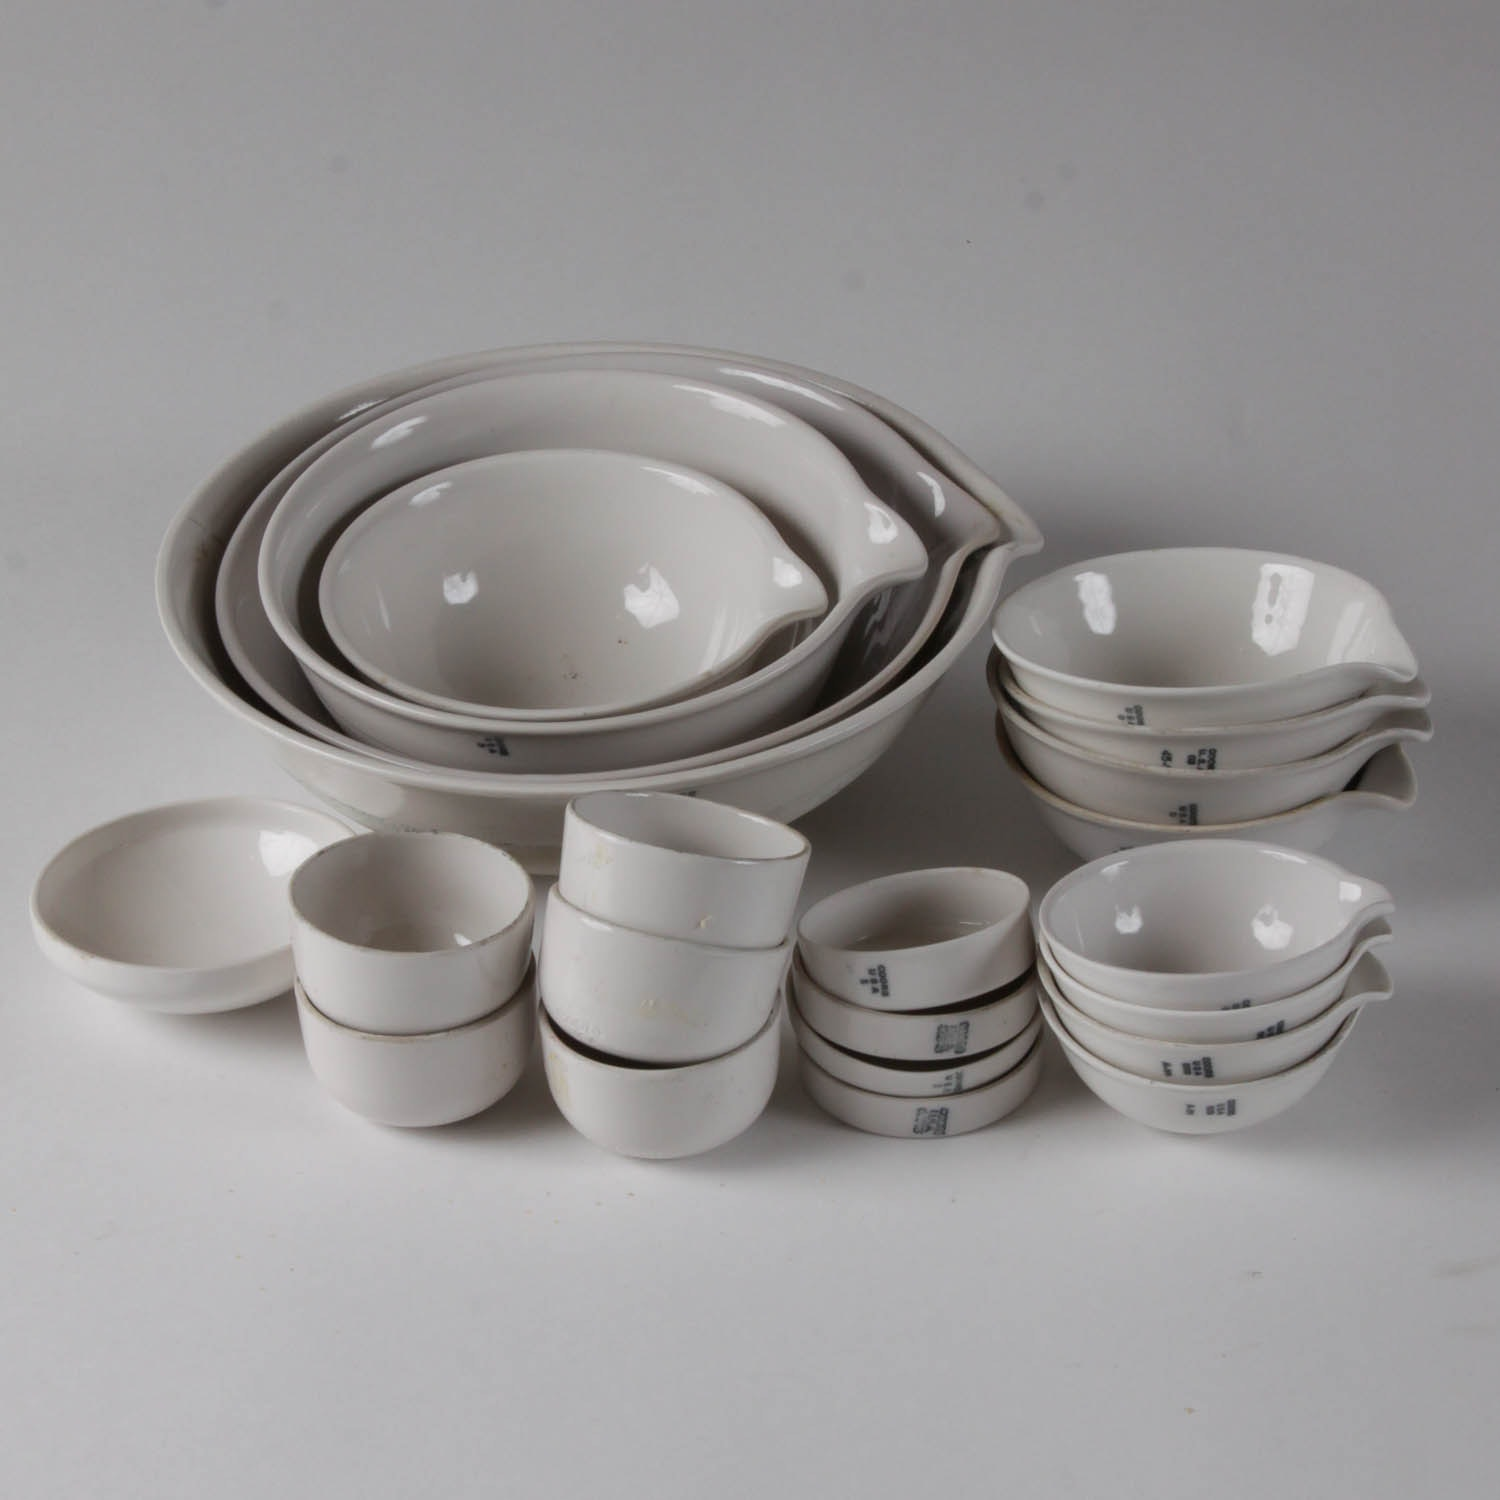 Collection of Vintage Coors Porcelain Evaporating Dishes